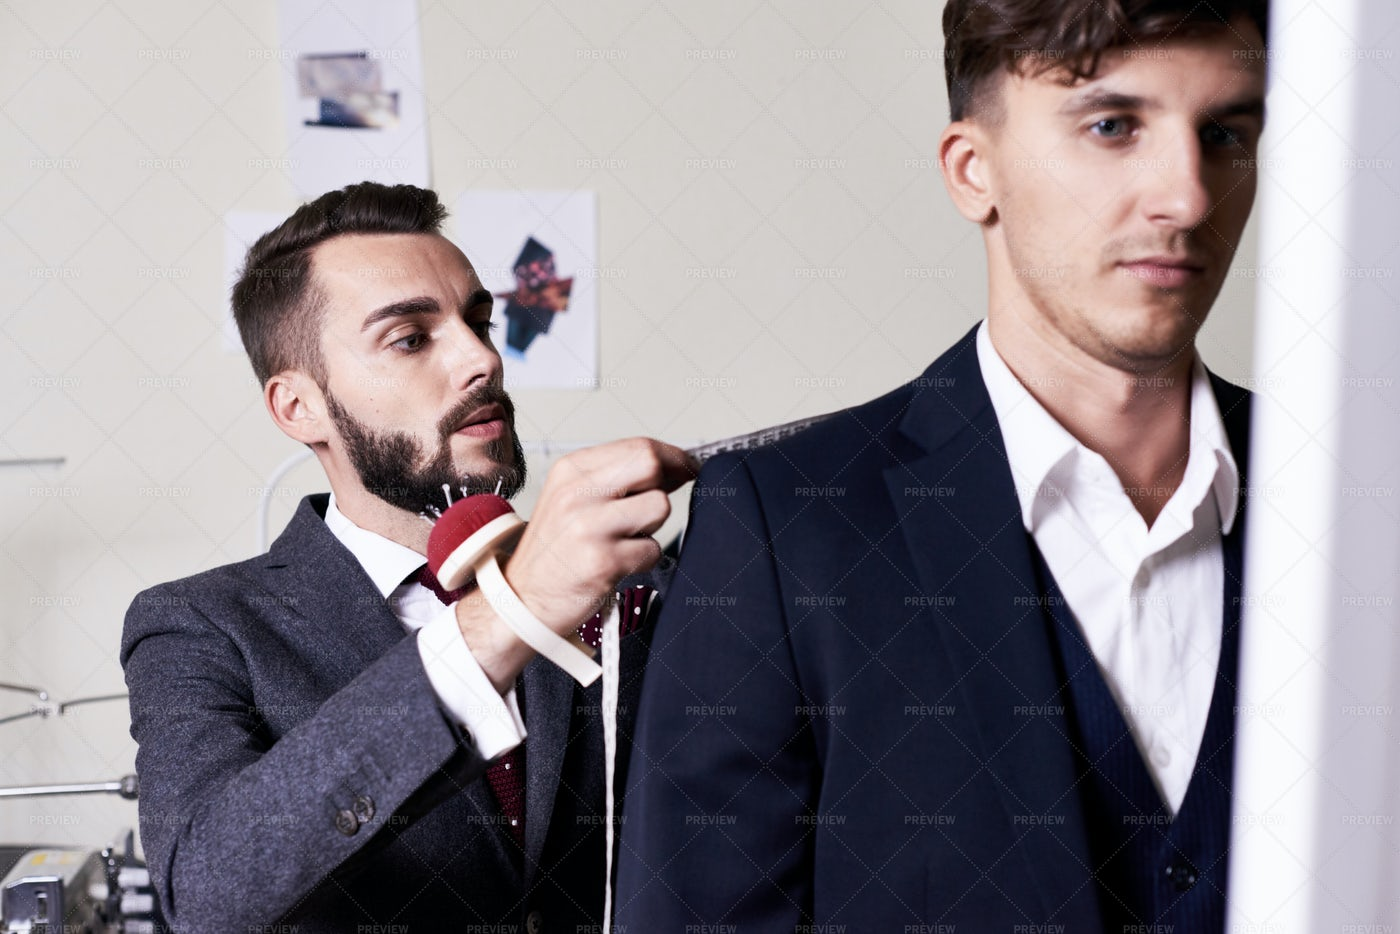 Professional Tailor Focused On Work: Stock Photos